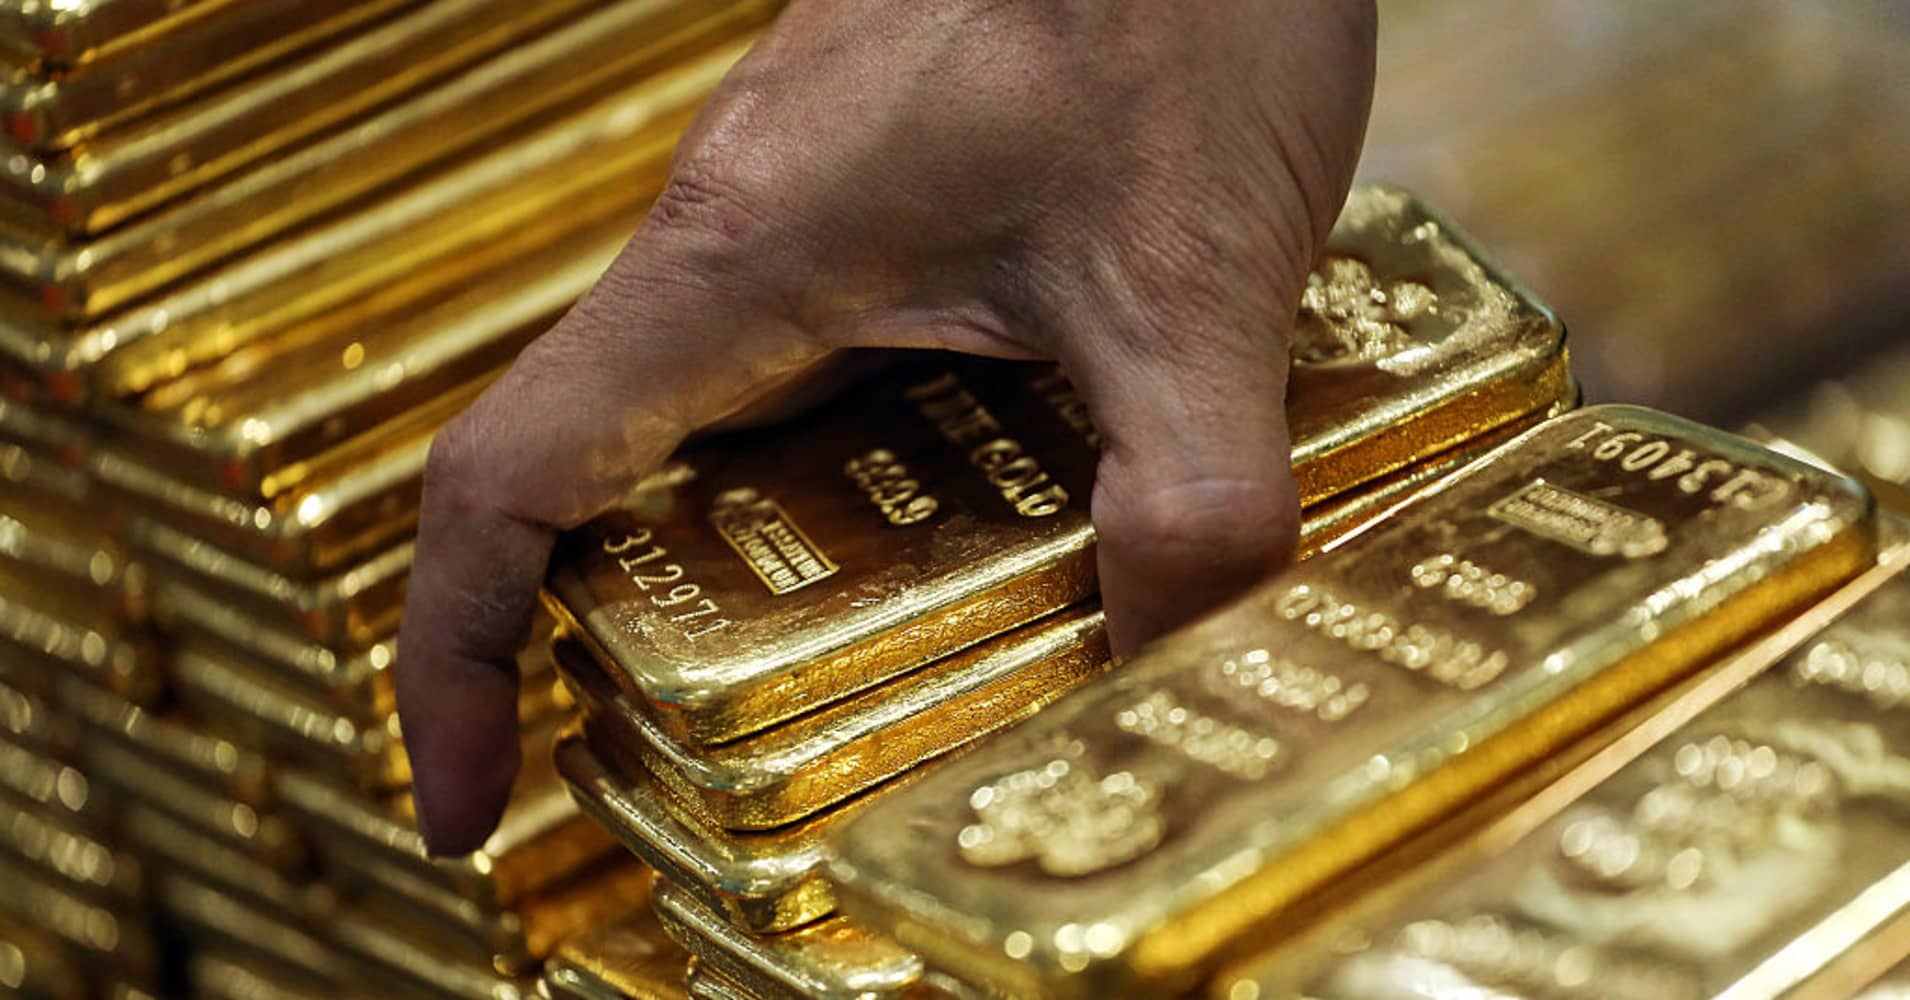 Gold pushes to 1200 and a much scarier world could keep it there buycottarizona